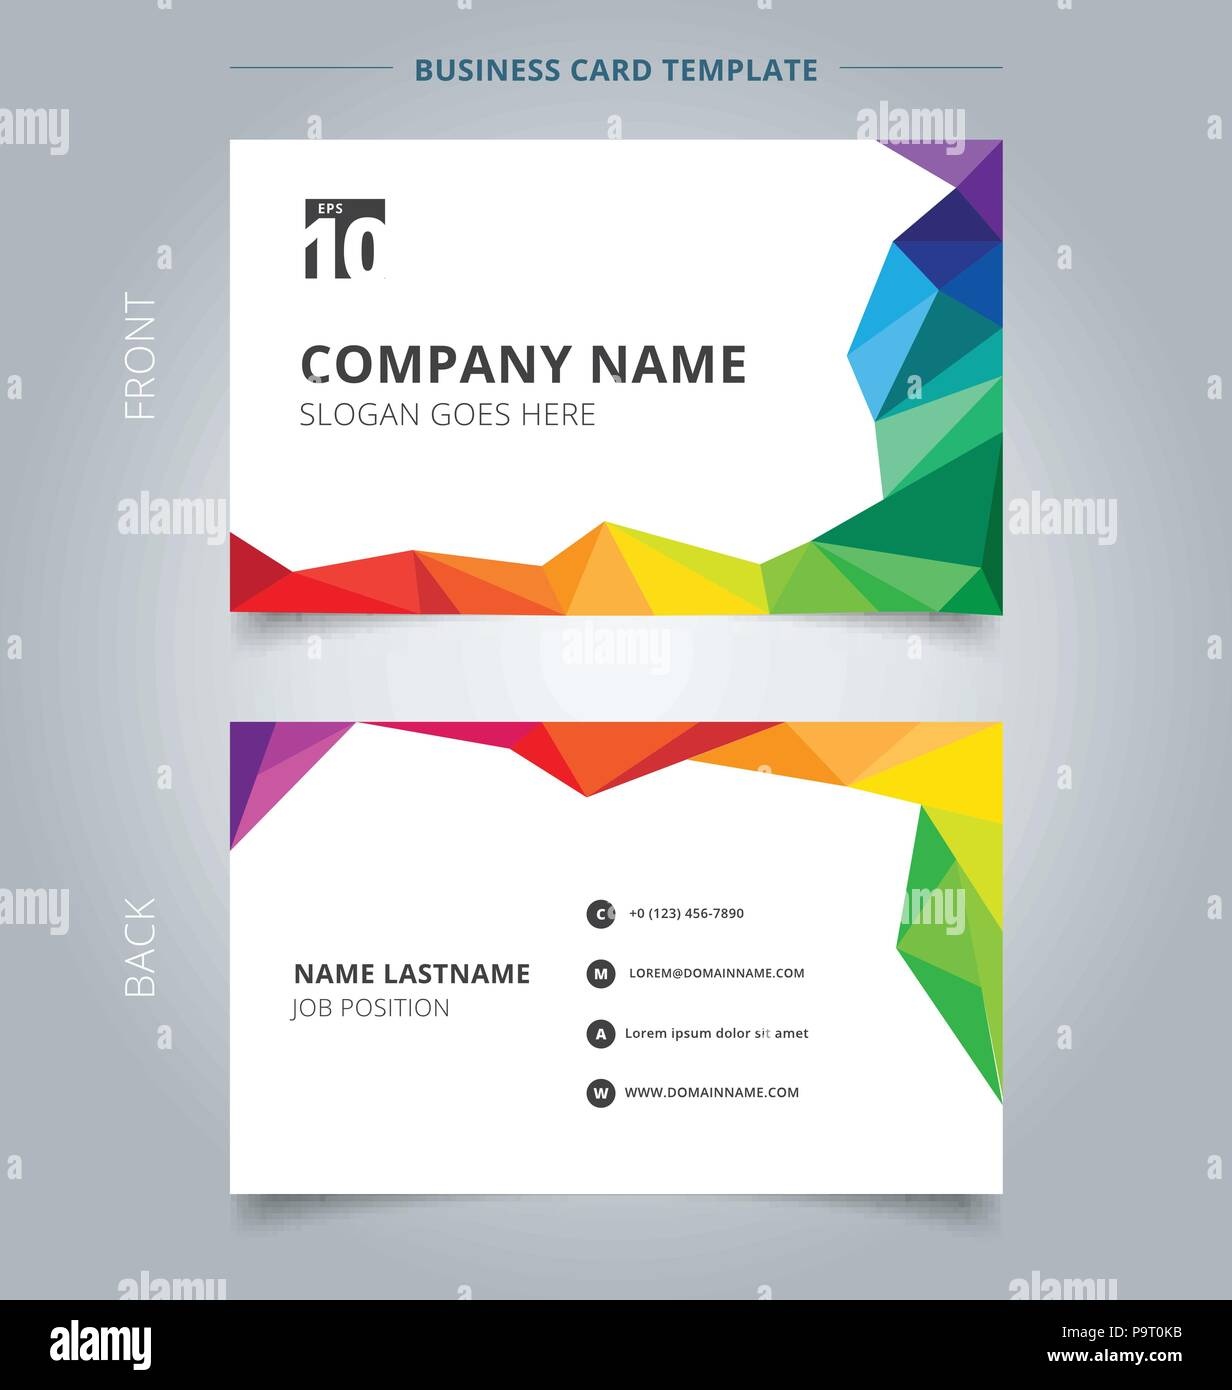 Business name card template design abstract colorful low polygon business name card template design abstract colorful low polygon style on white background vector illustration accmission